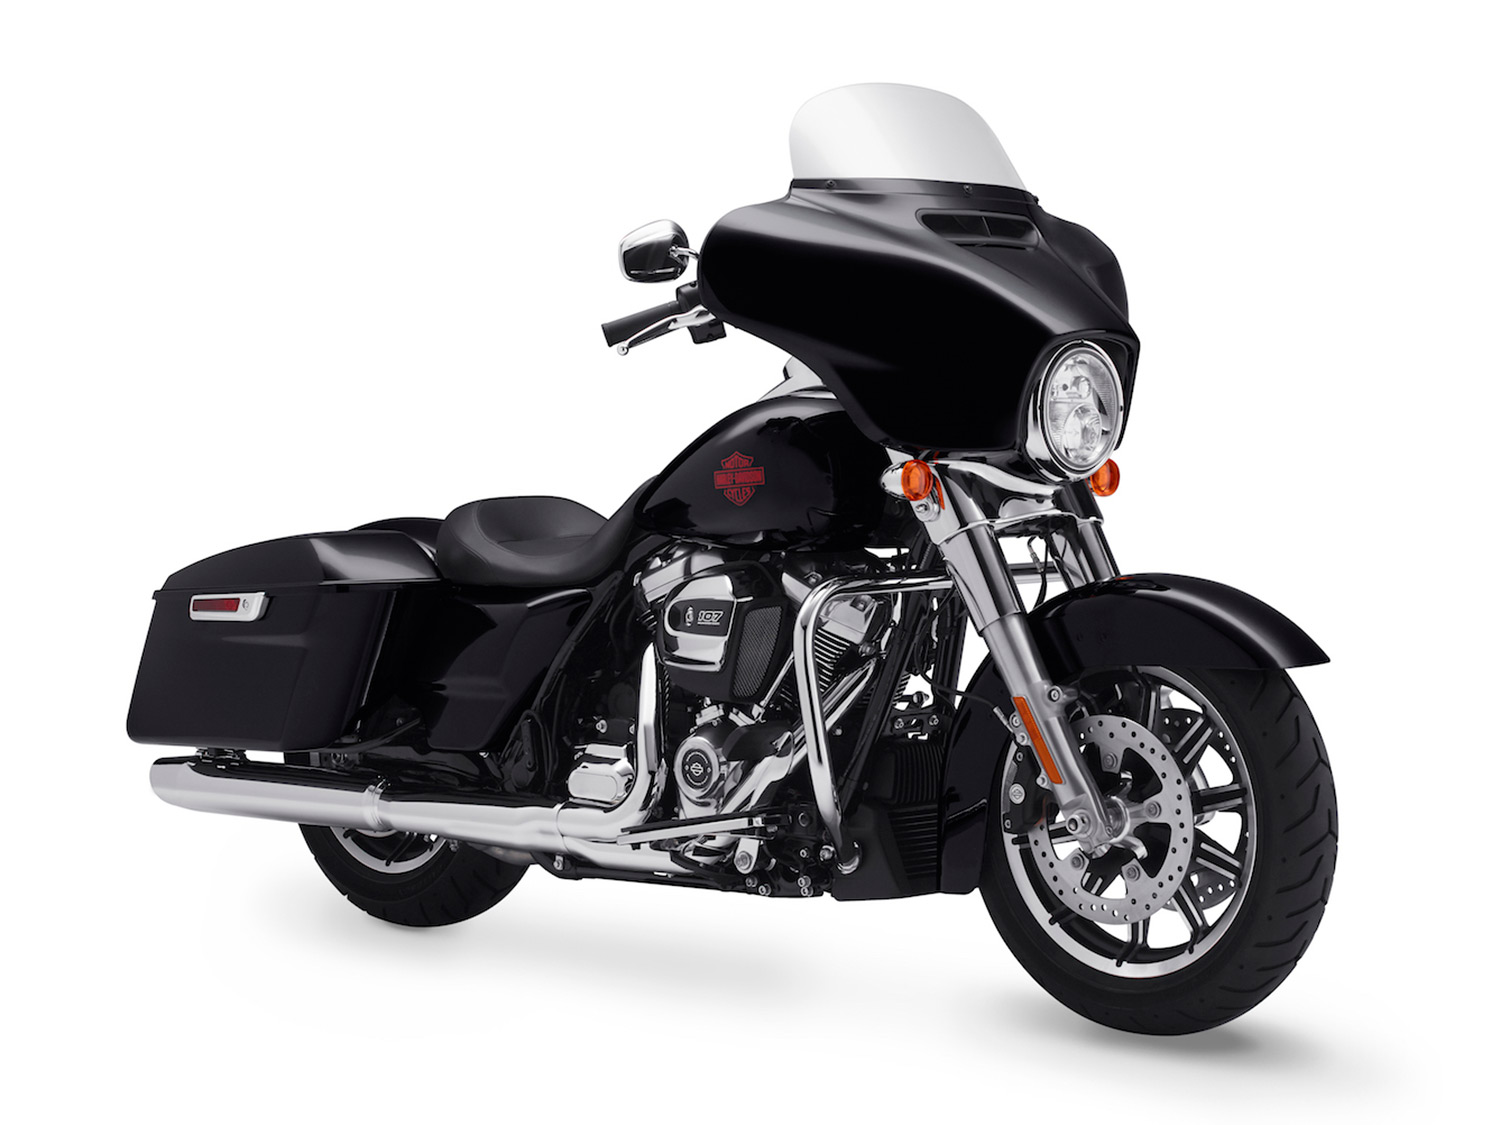 Harley Davidson Touring With Harley Davidson Motorcycles Cycle World